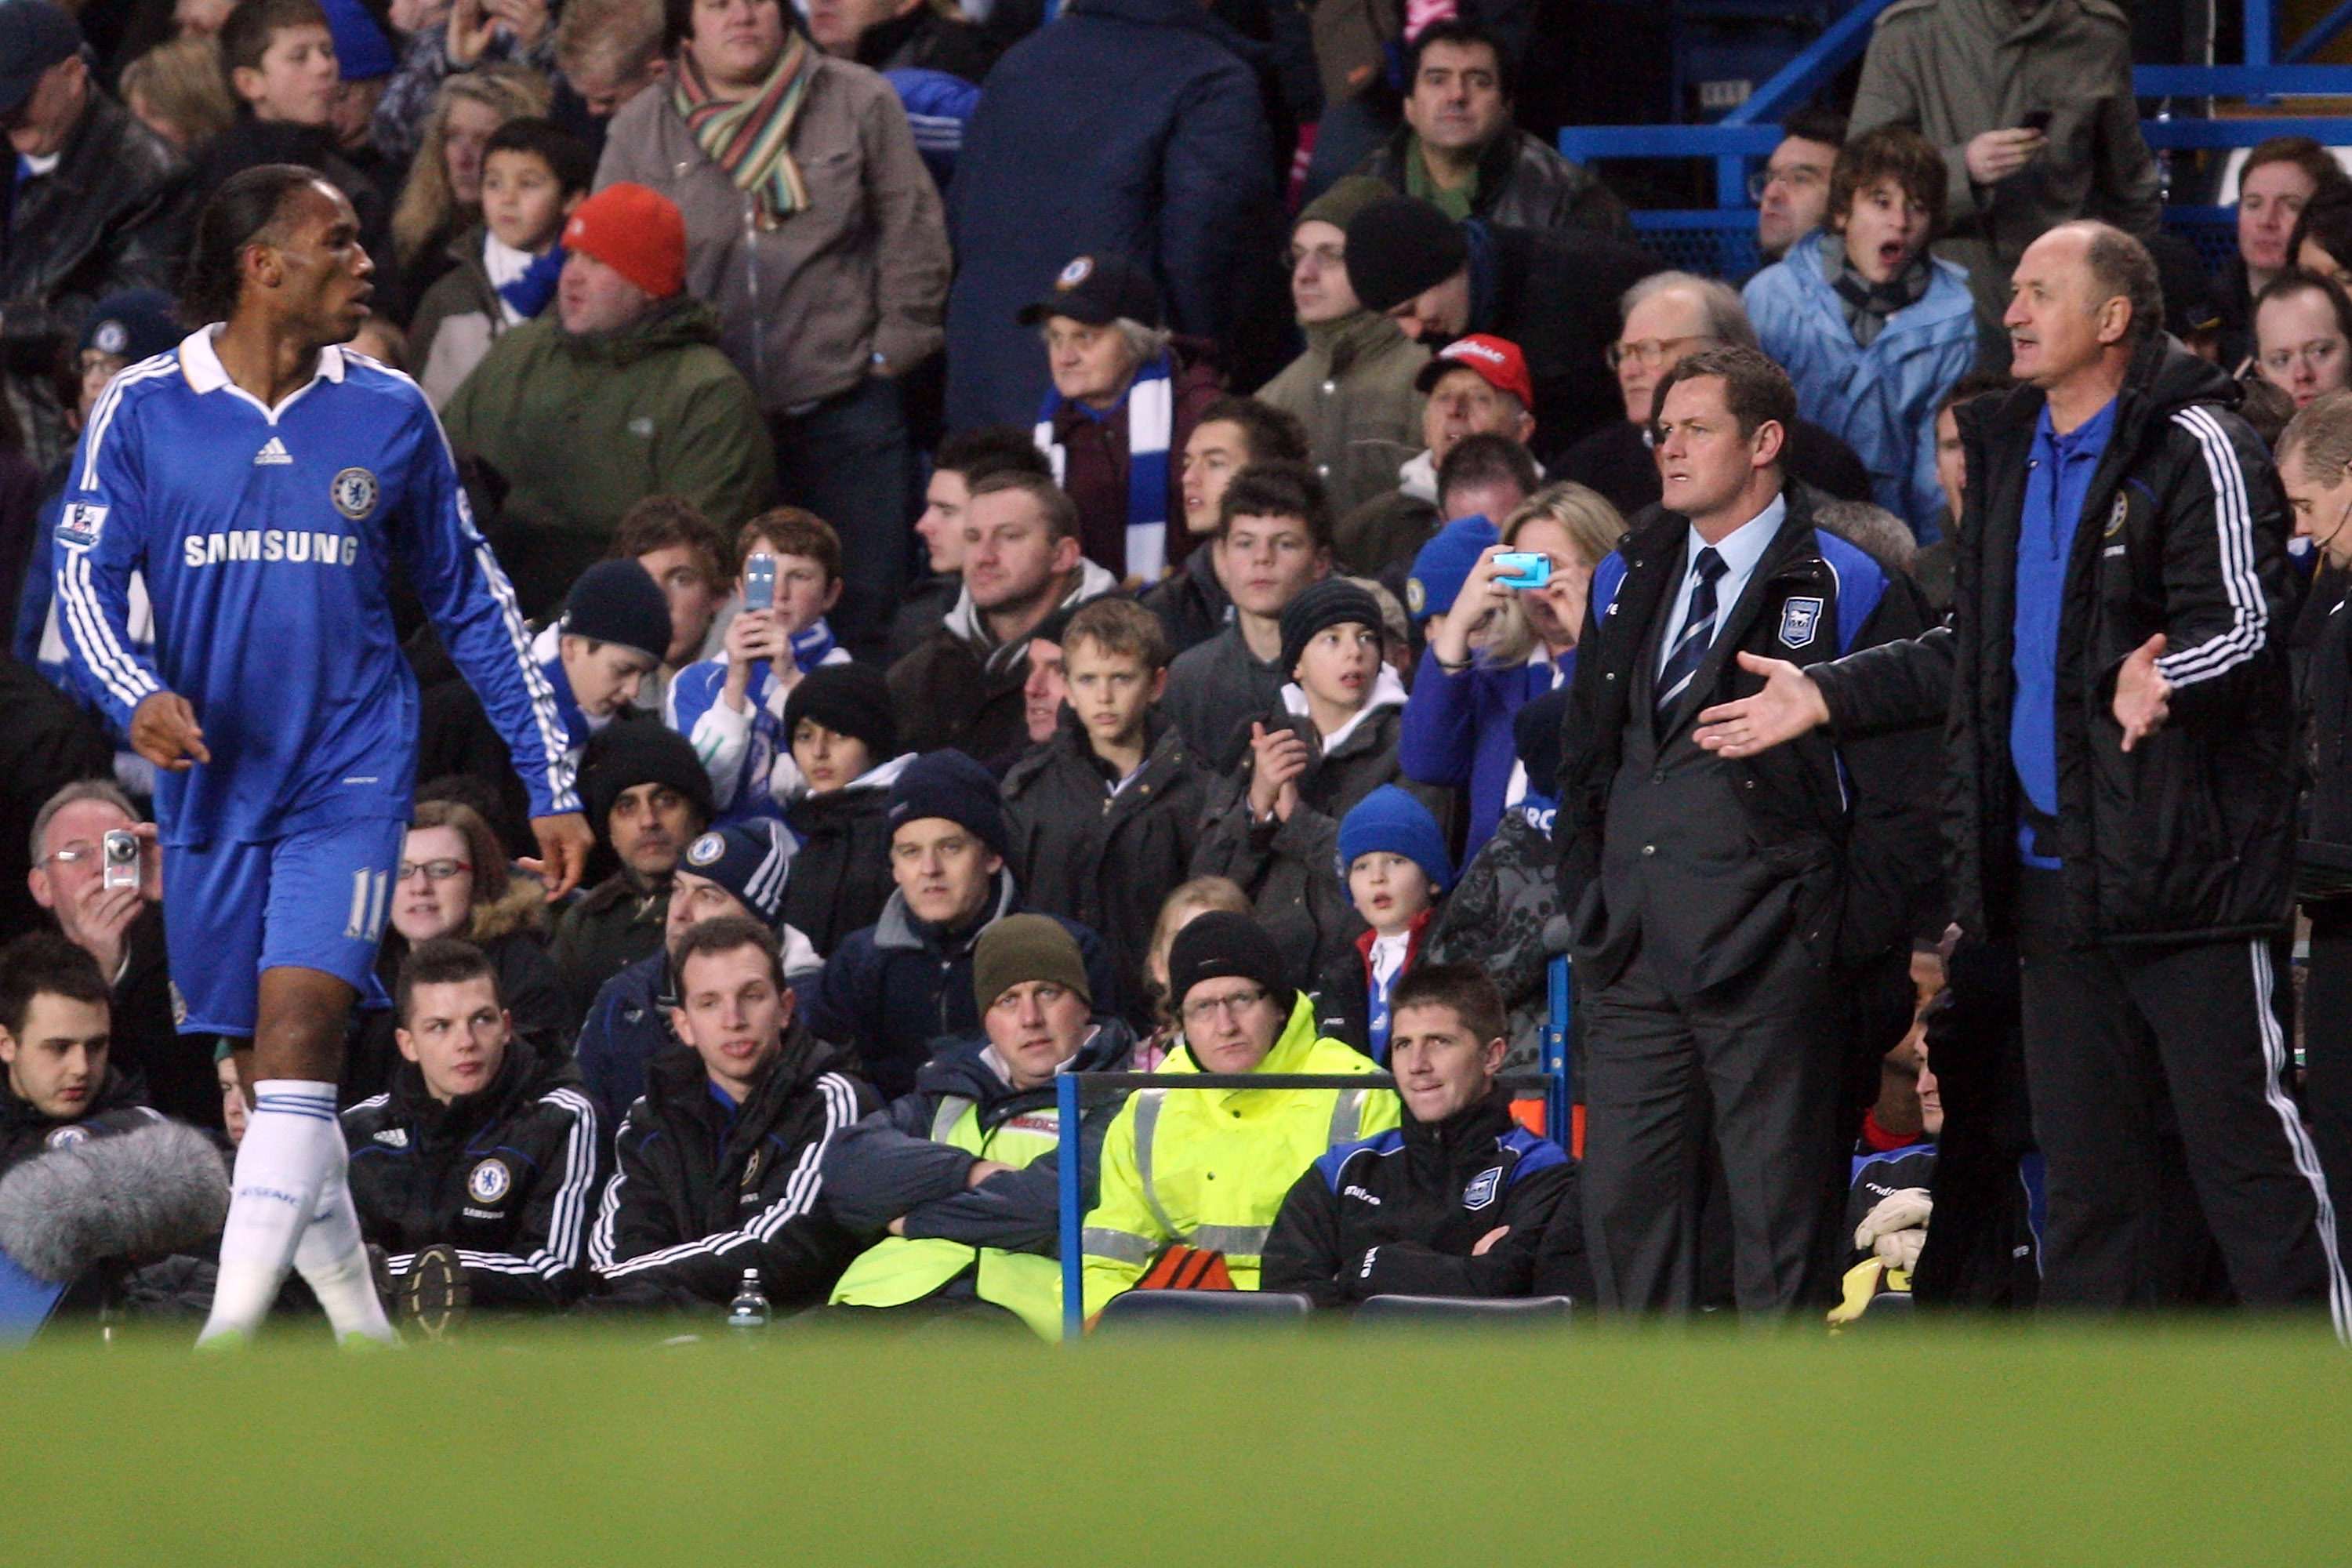 chelsea-v-ipswich-town-fa-cup-4th-round.jpg